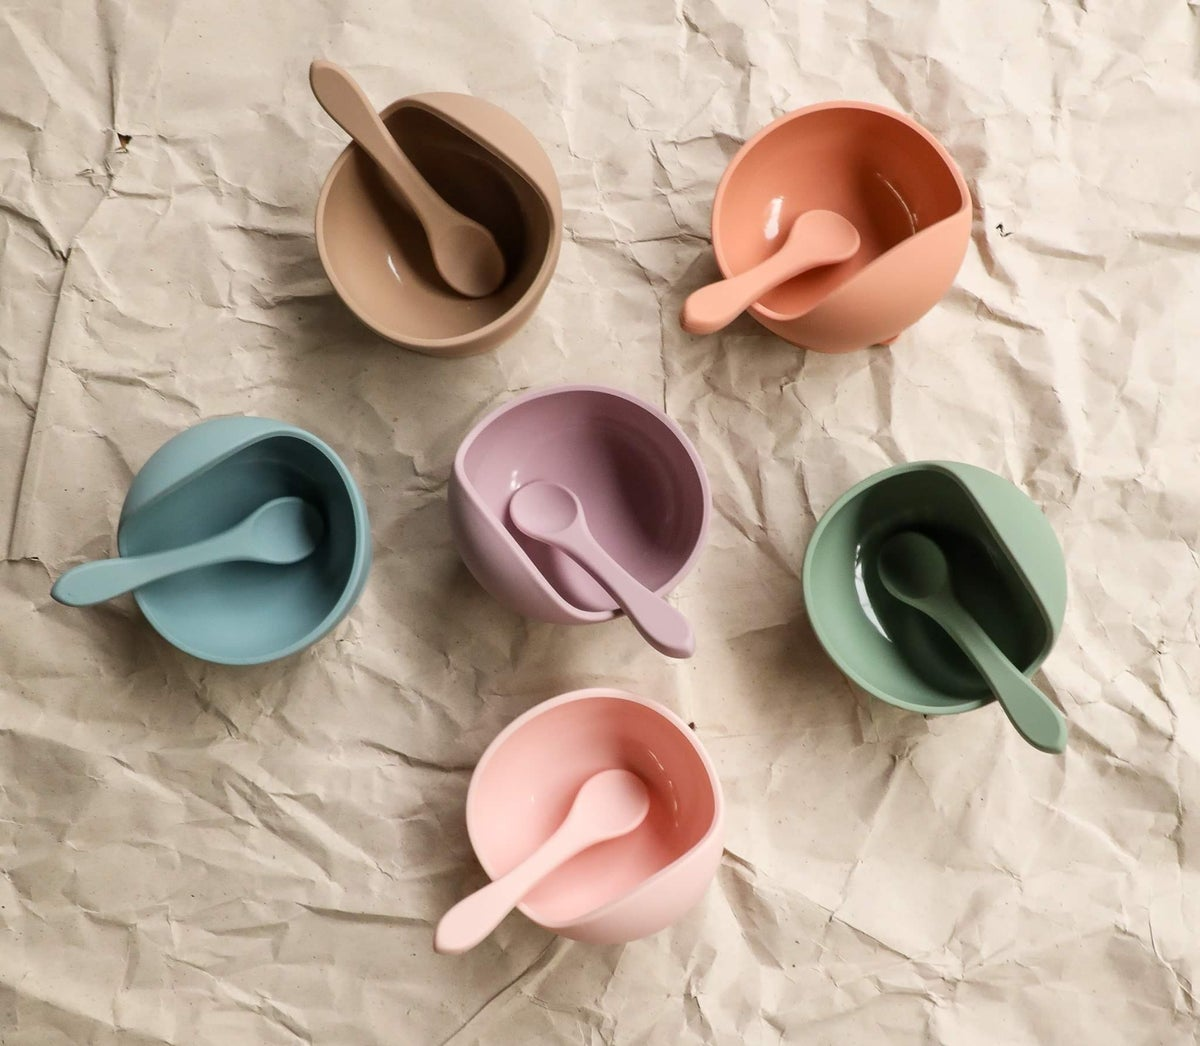 Image of Suction Silicone Bowl and Spoon set